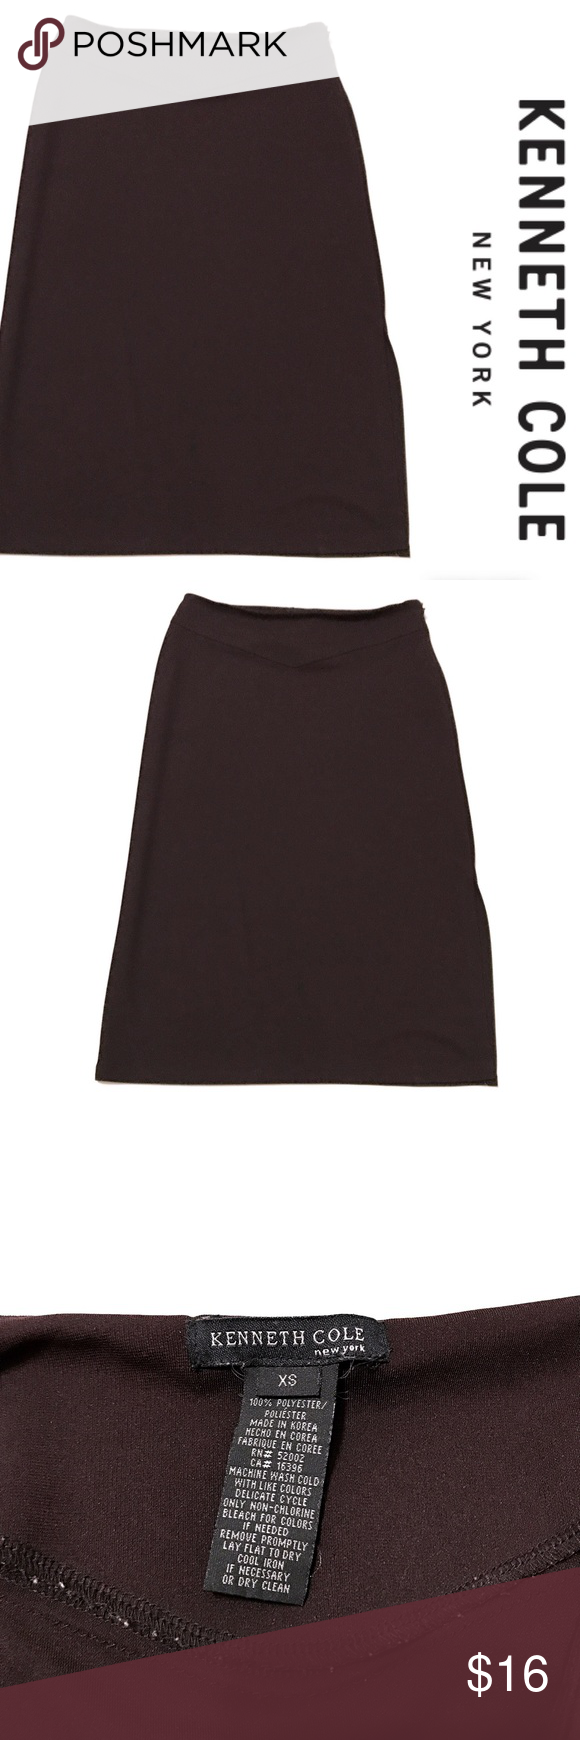 Kenneth Cole Midi Skirt Good used condition. Smoke free home.  No inside pets. True to size. Please feel free to ask me any questions. Make me an offer! Kenneth Cole Skirts Midi